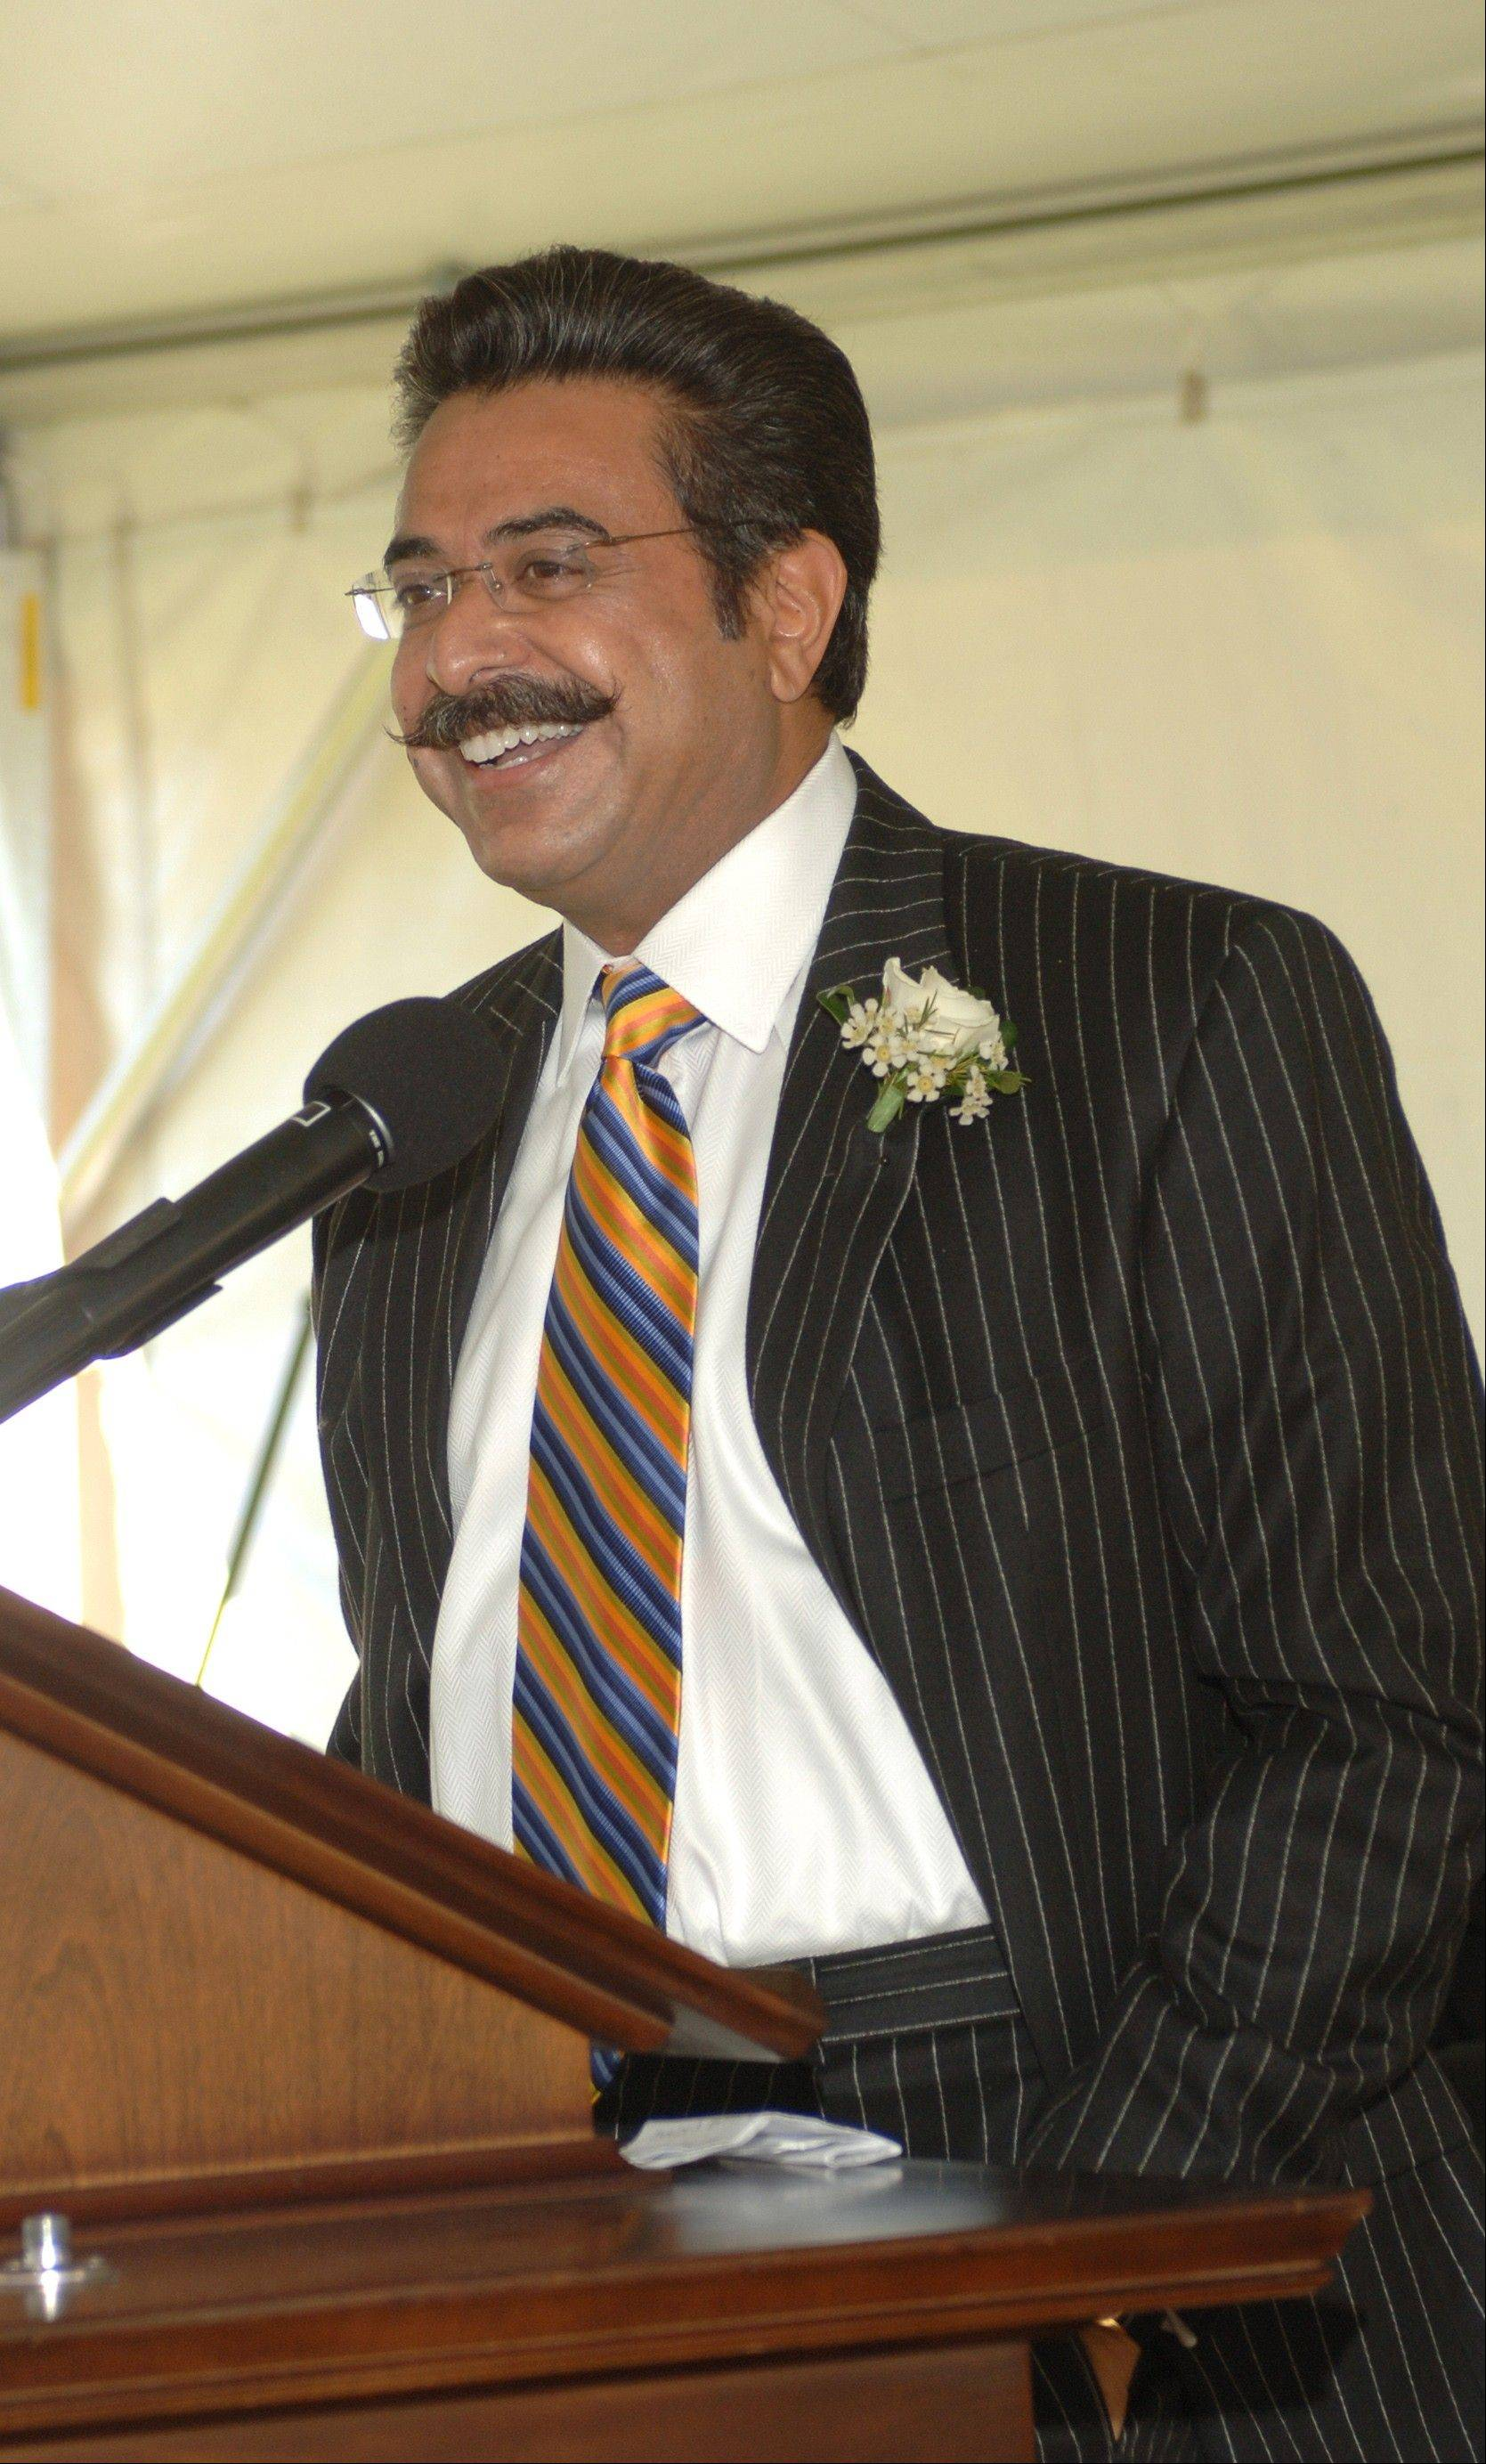 Shahid Khan, owner of the Jacksonville Jaguars, has been a major donor to the University of Illinois. He'll speak at commencement on May 12.